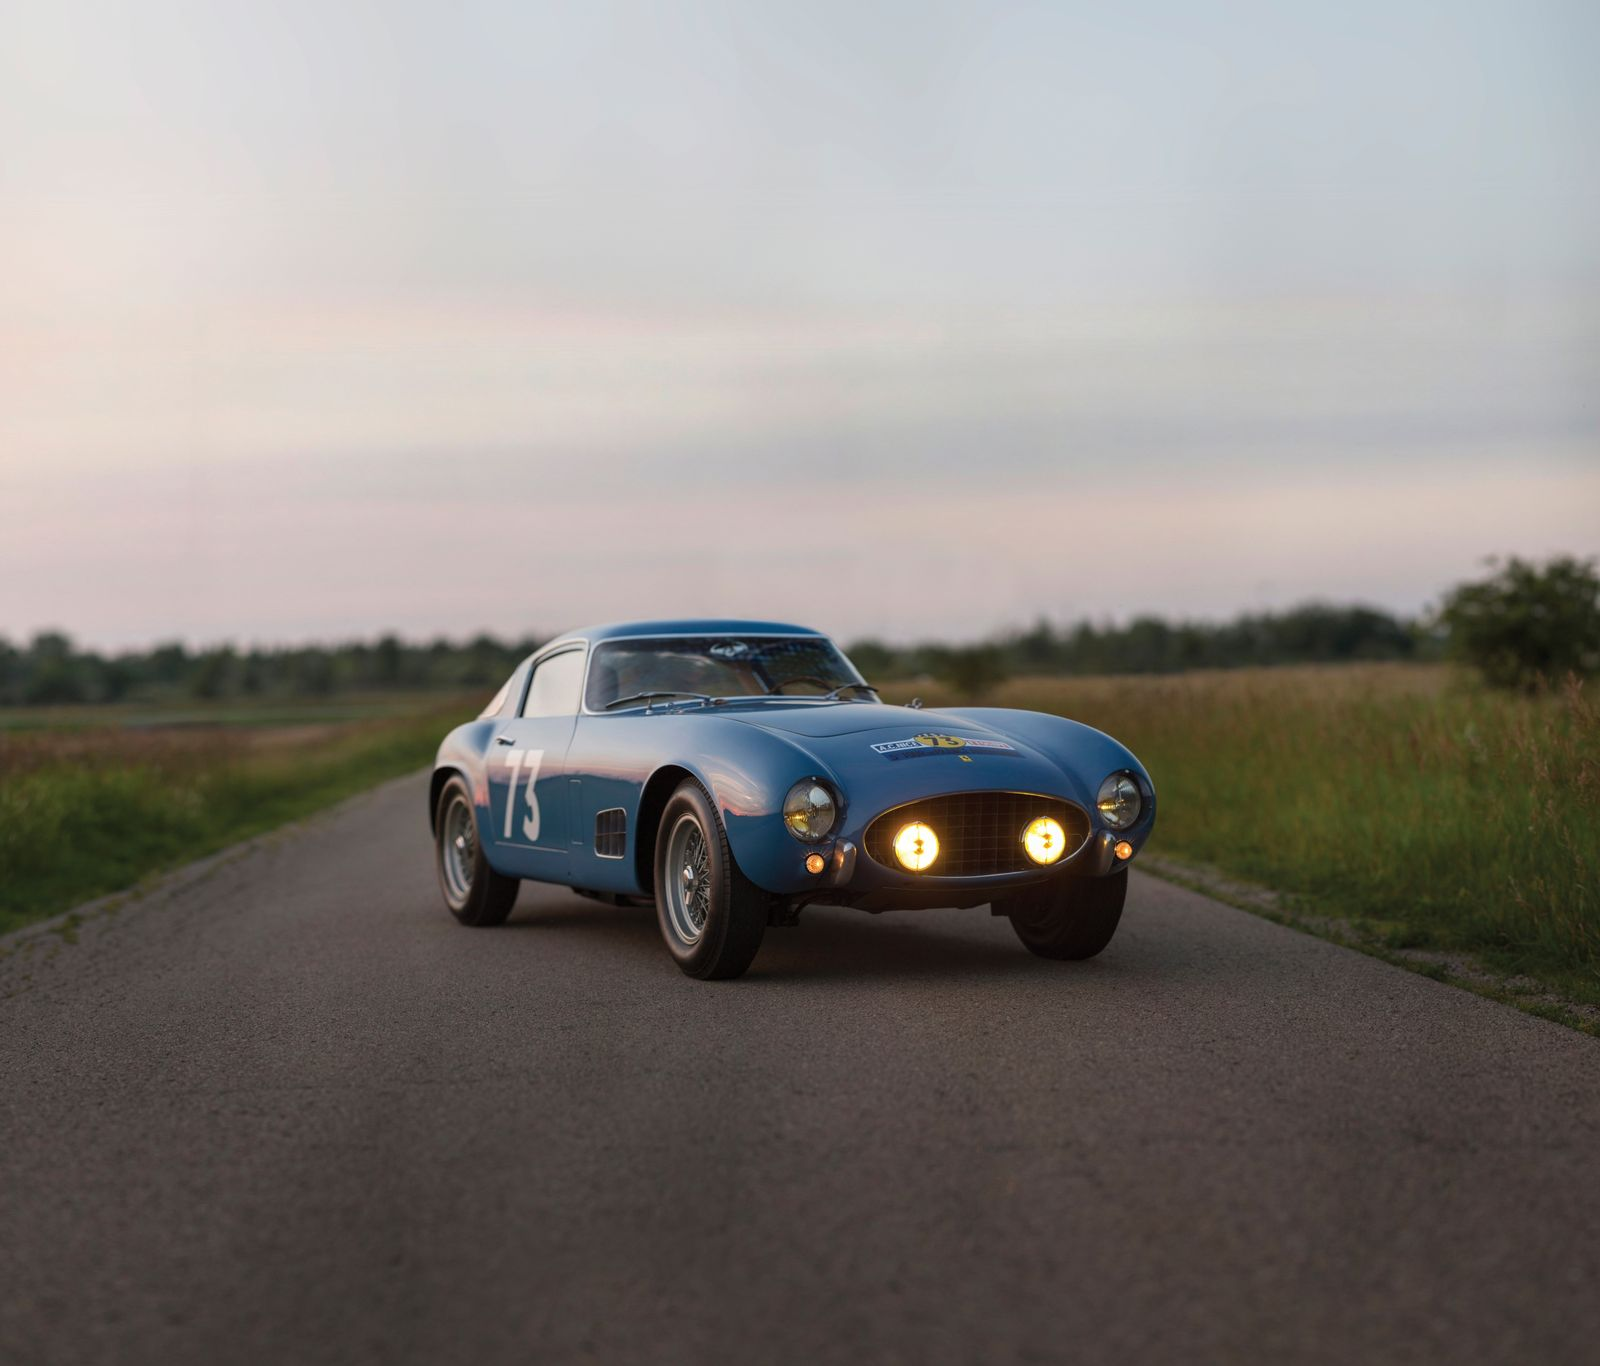 The 1956 Ferrari 250 GT Berlinetta Competizione